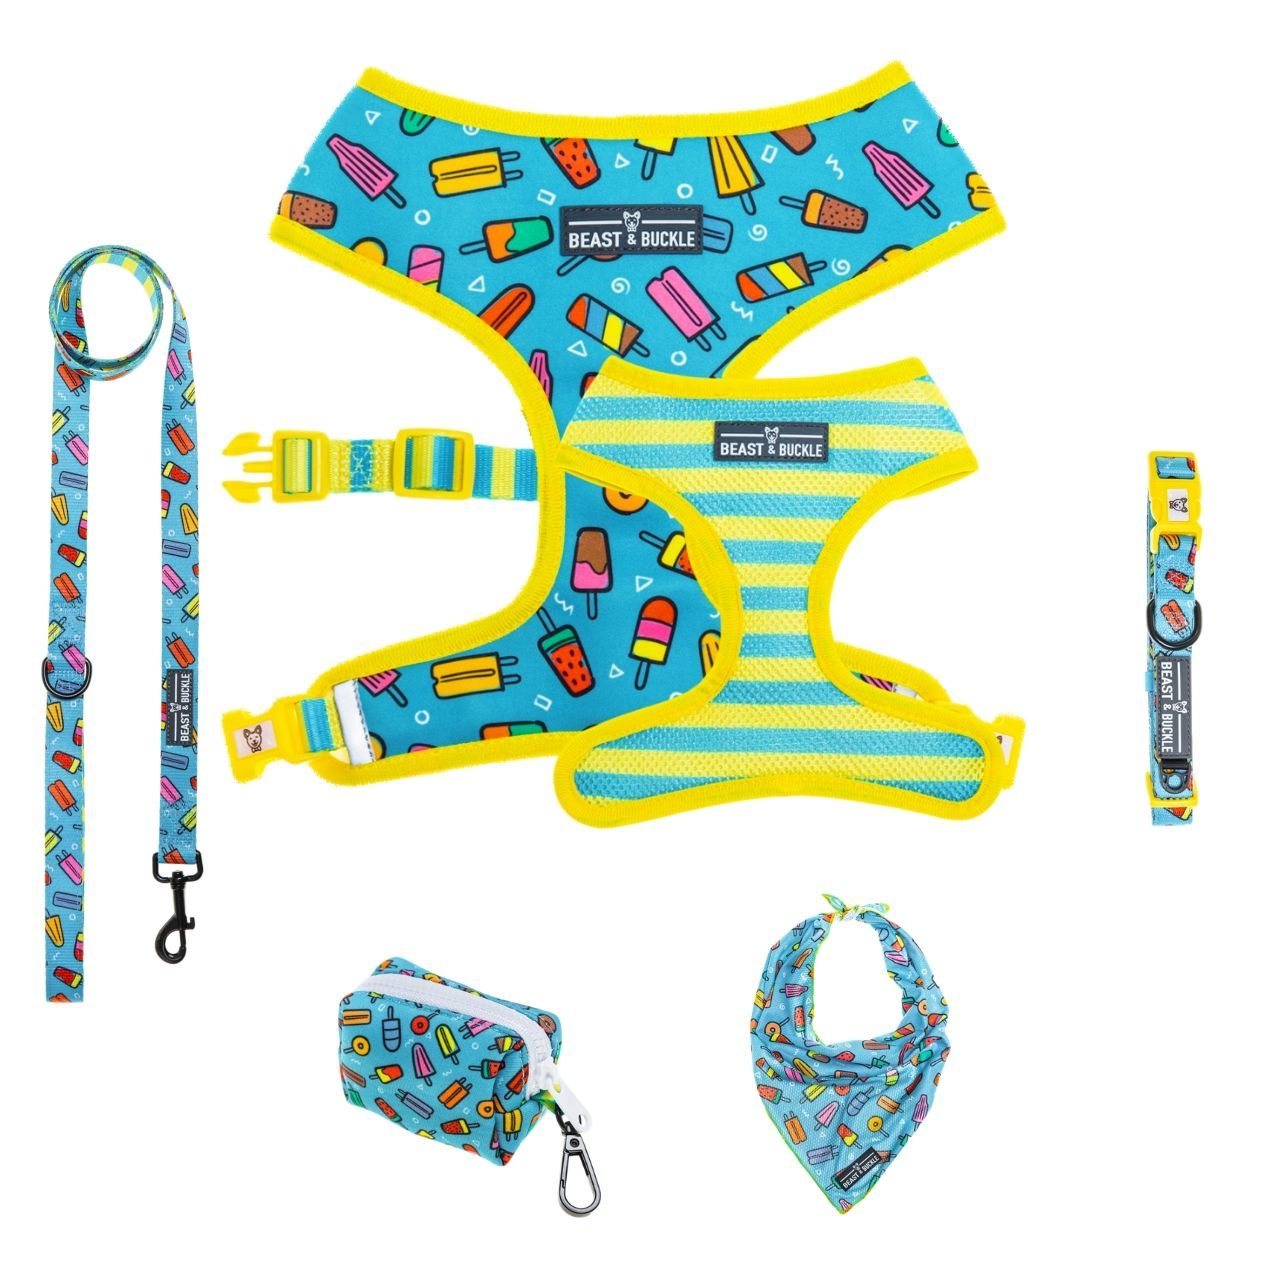 Popsicle Harness Collection Bundle - Beast & Buckle